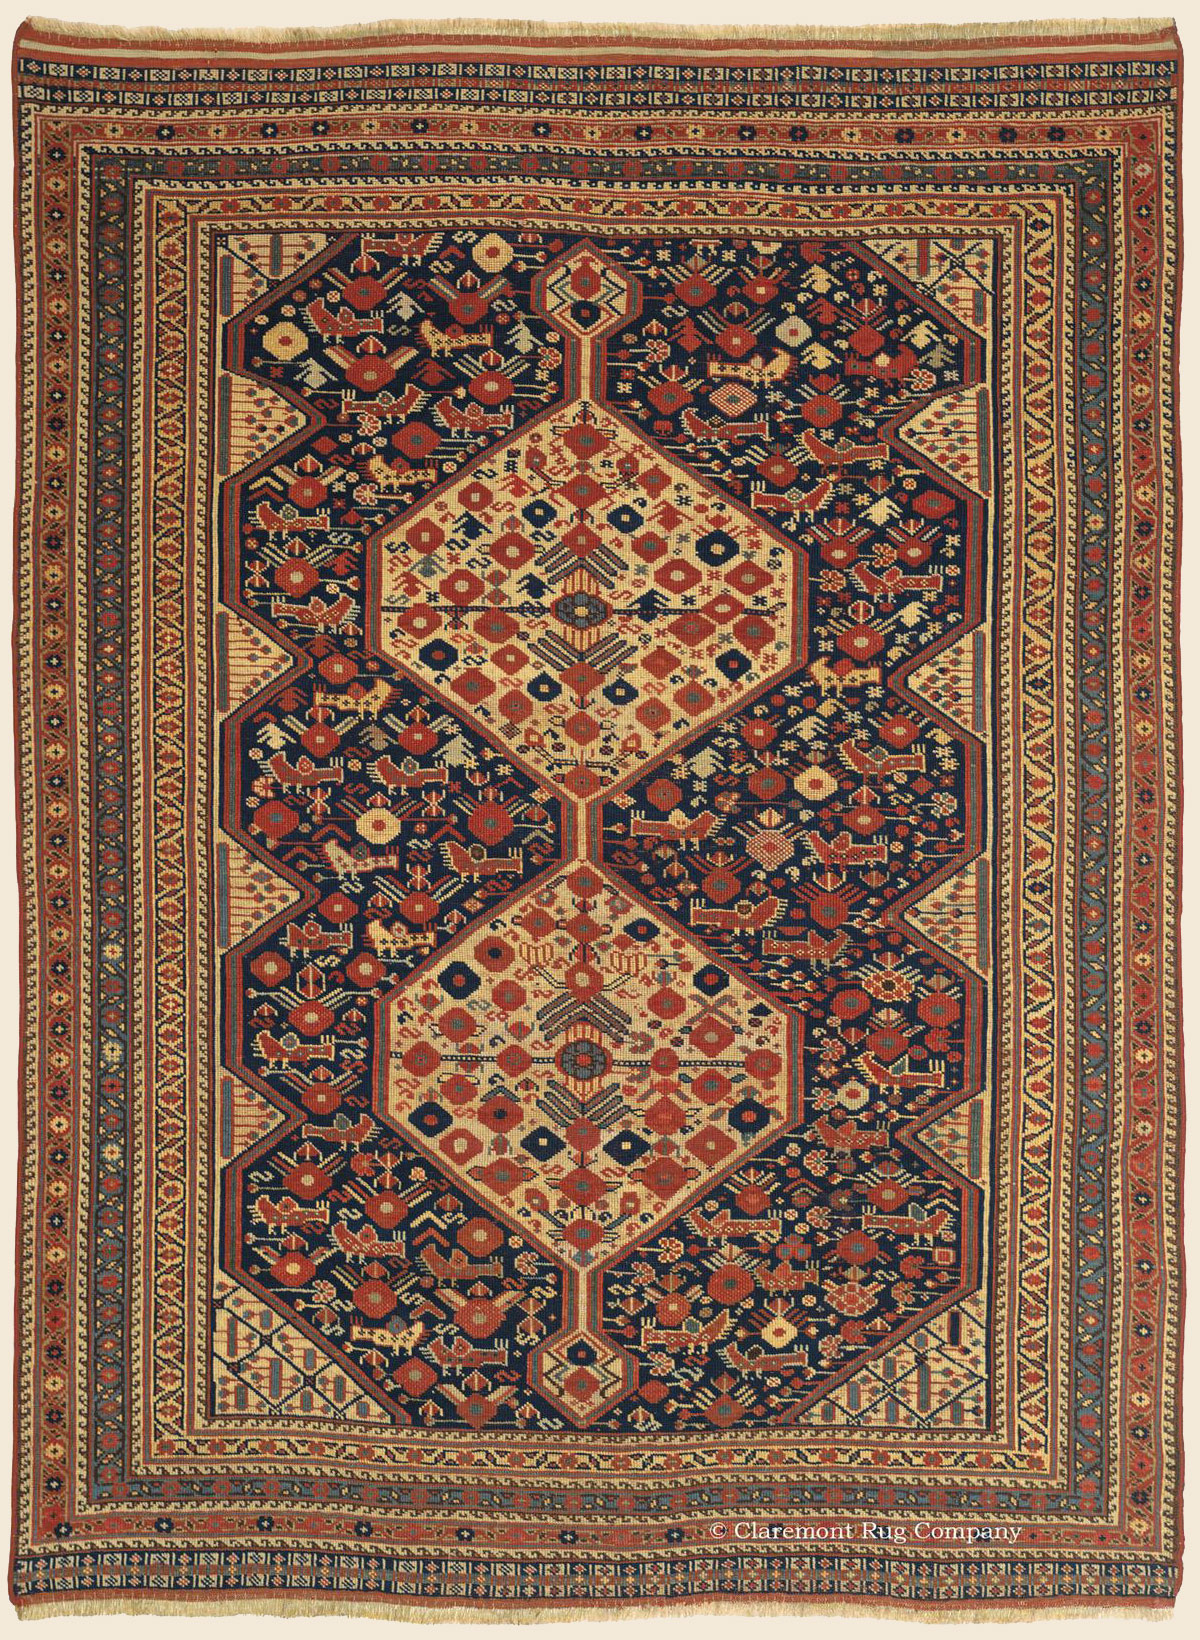 Khamseh Antique Persian Connoisseur Caliber Rug Circa 1875